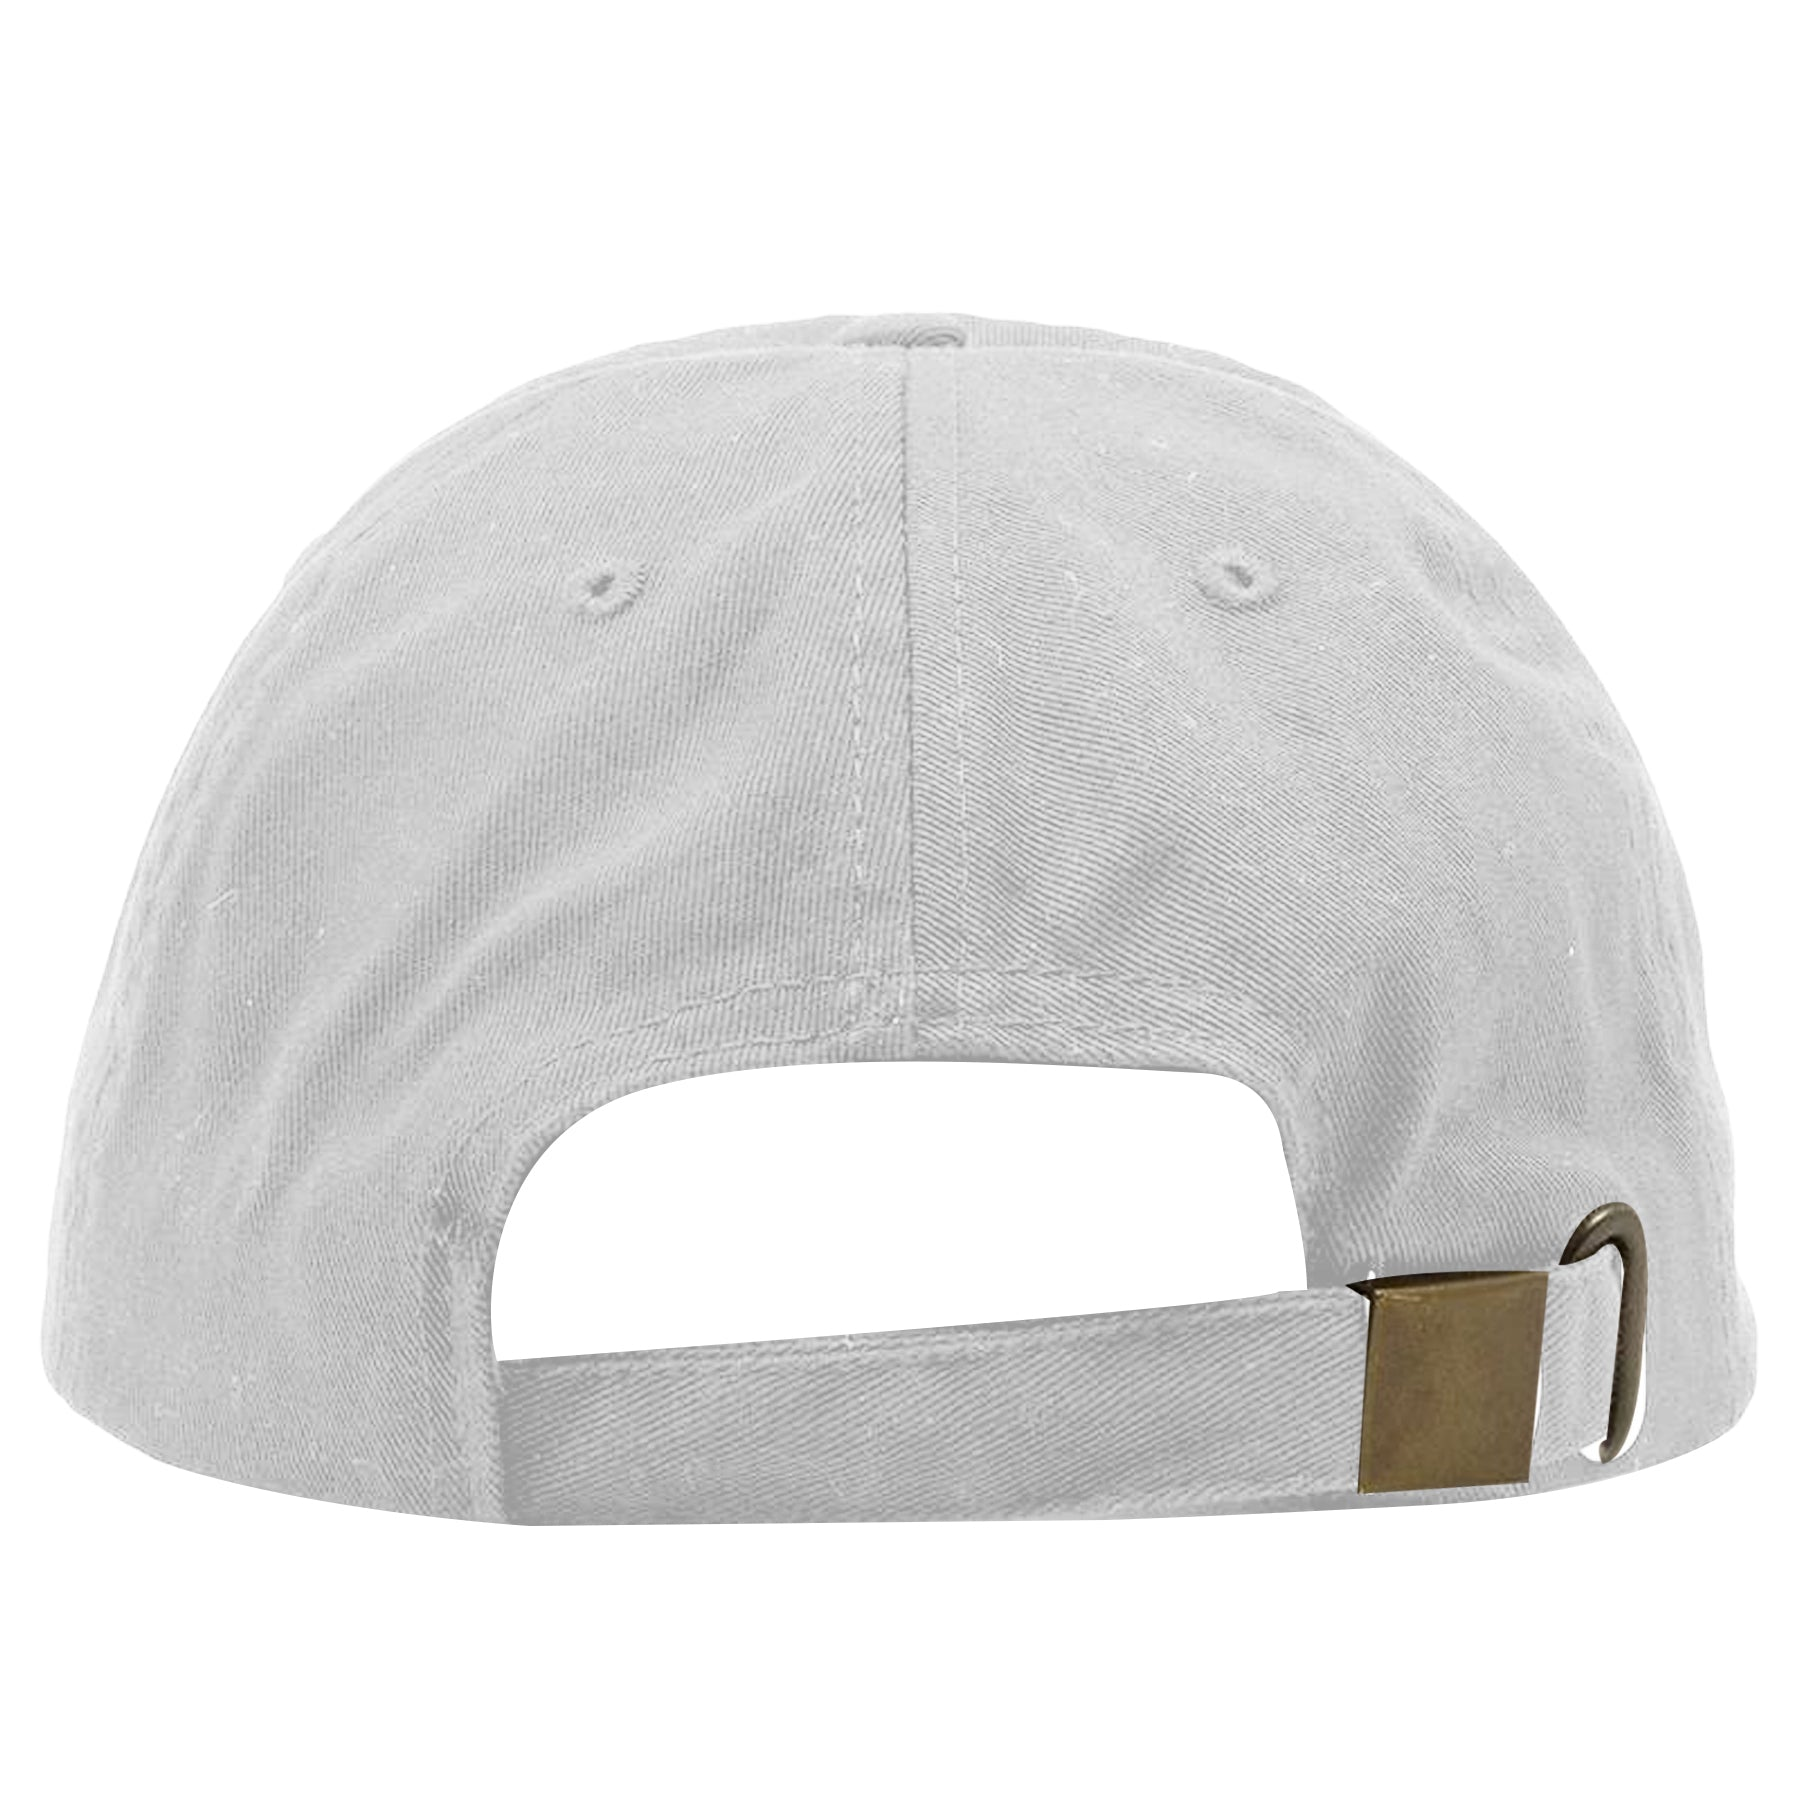 ... the back of the philadelphia football throwback veterans stadium white  dad hat is a white adjustable b8603d1ea